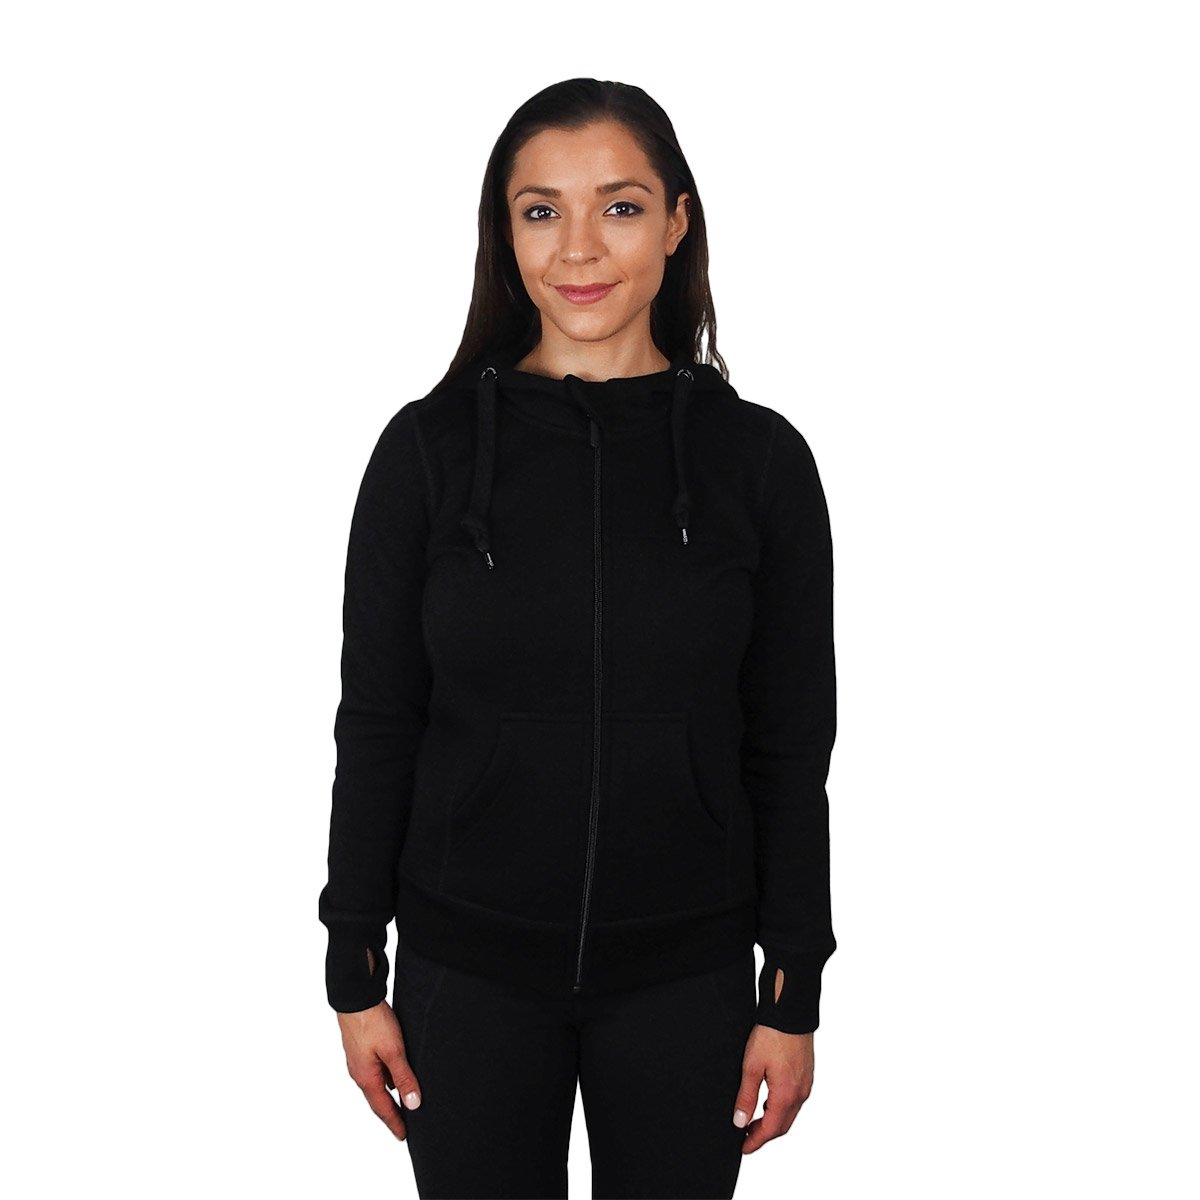 Minus33 Merino Wool Aleutian Women's Expedition Full Zip Hoody Black Small